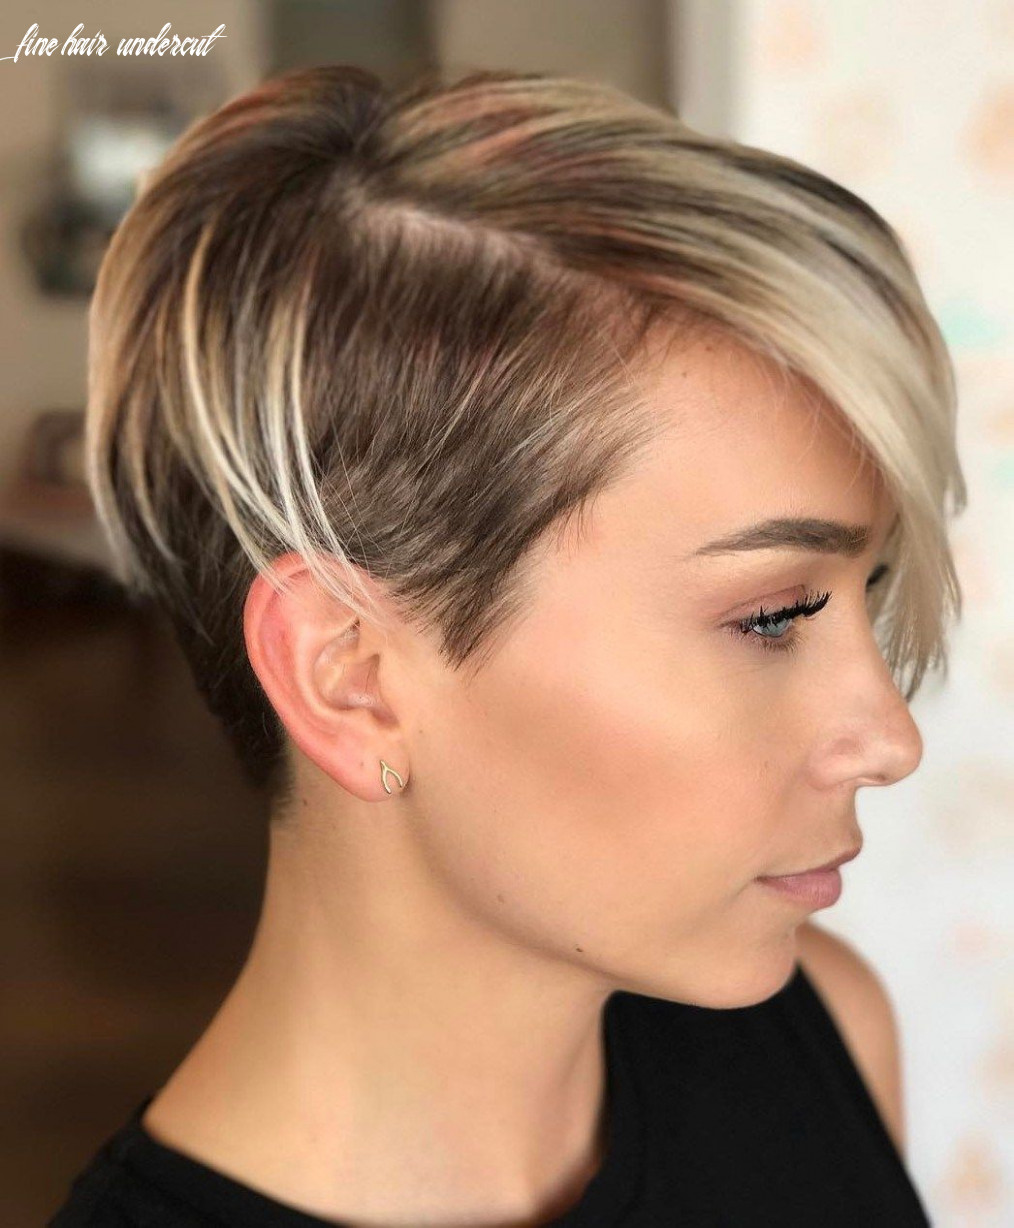 9 mind blowing short hairstyles for fine hair | thick hair styles fine hair undercut